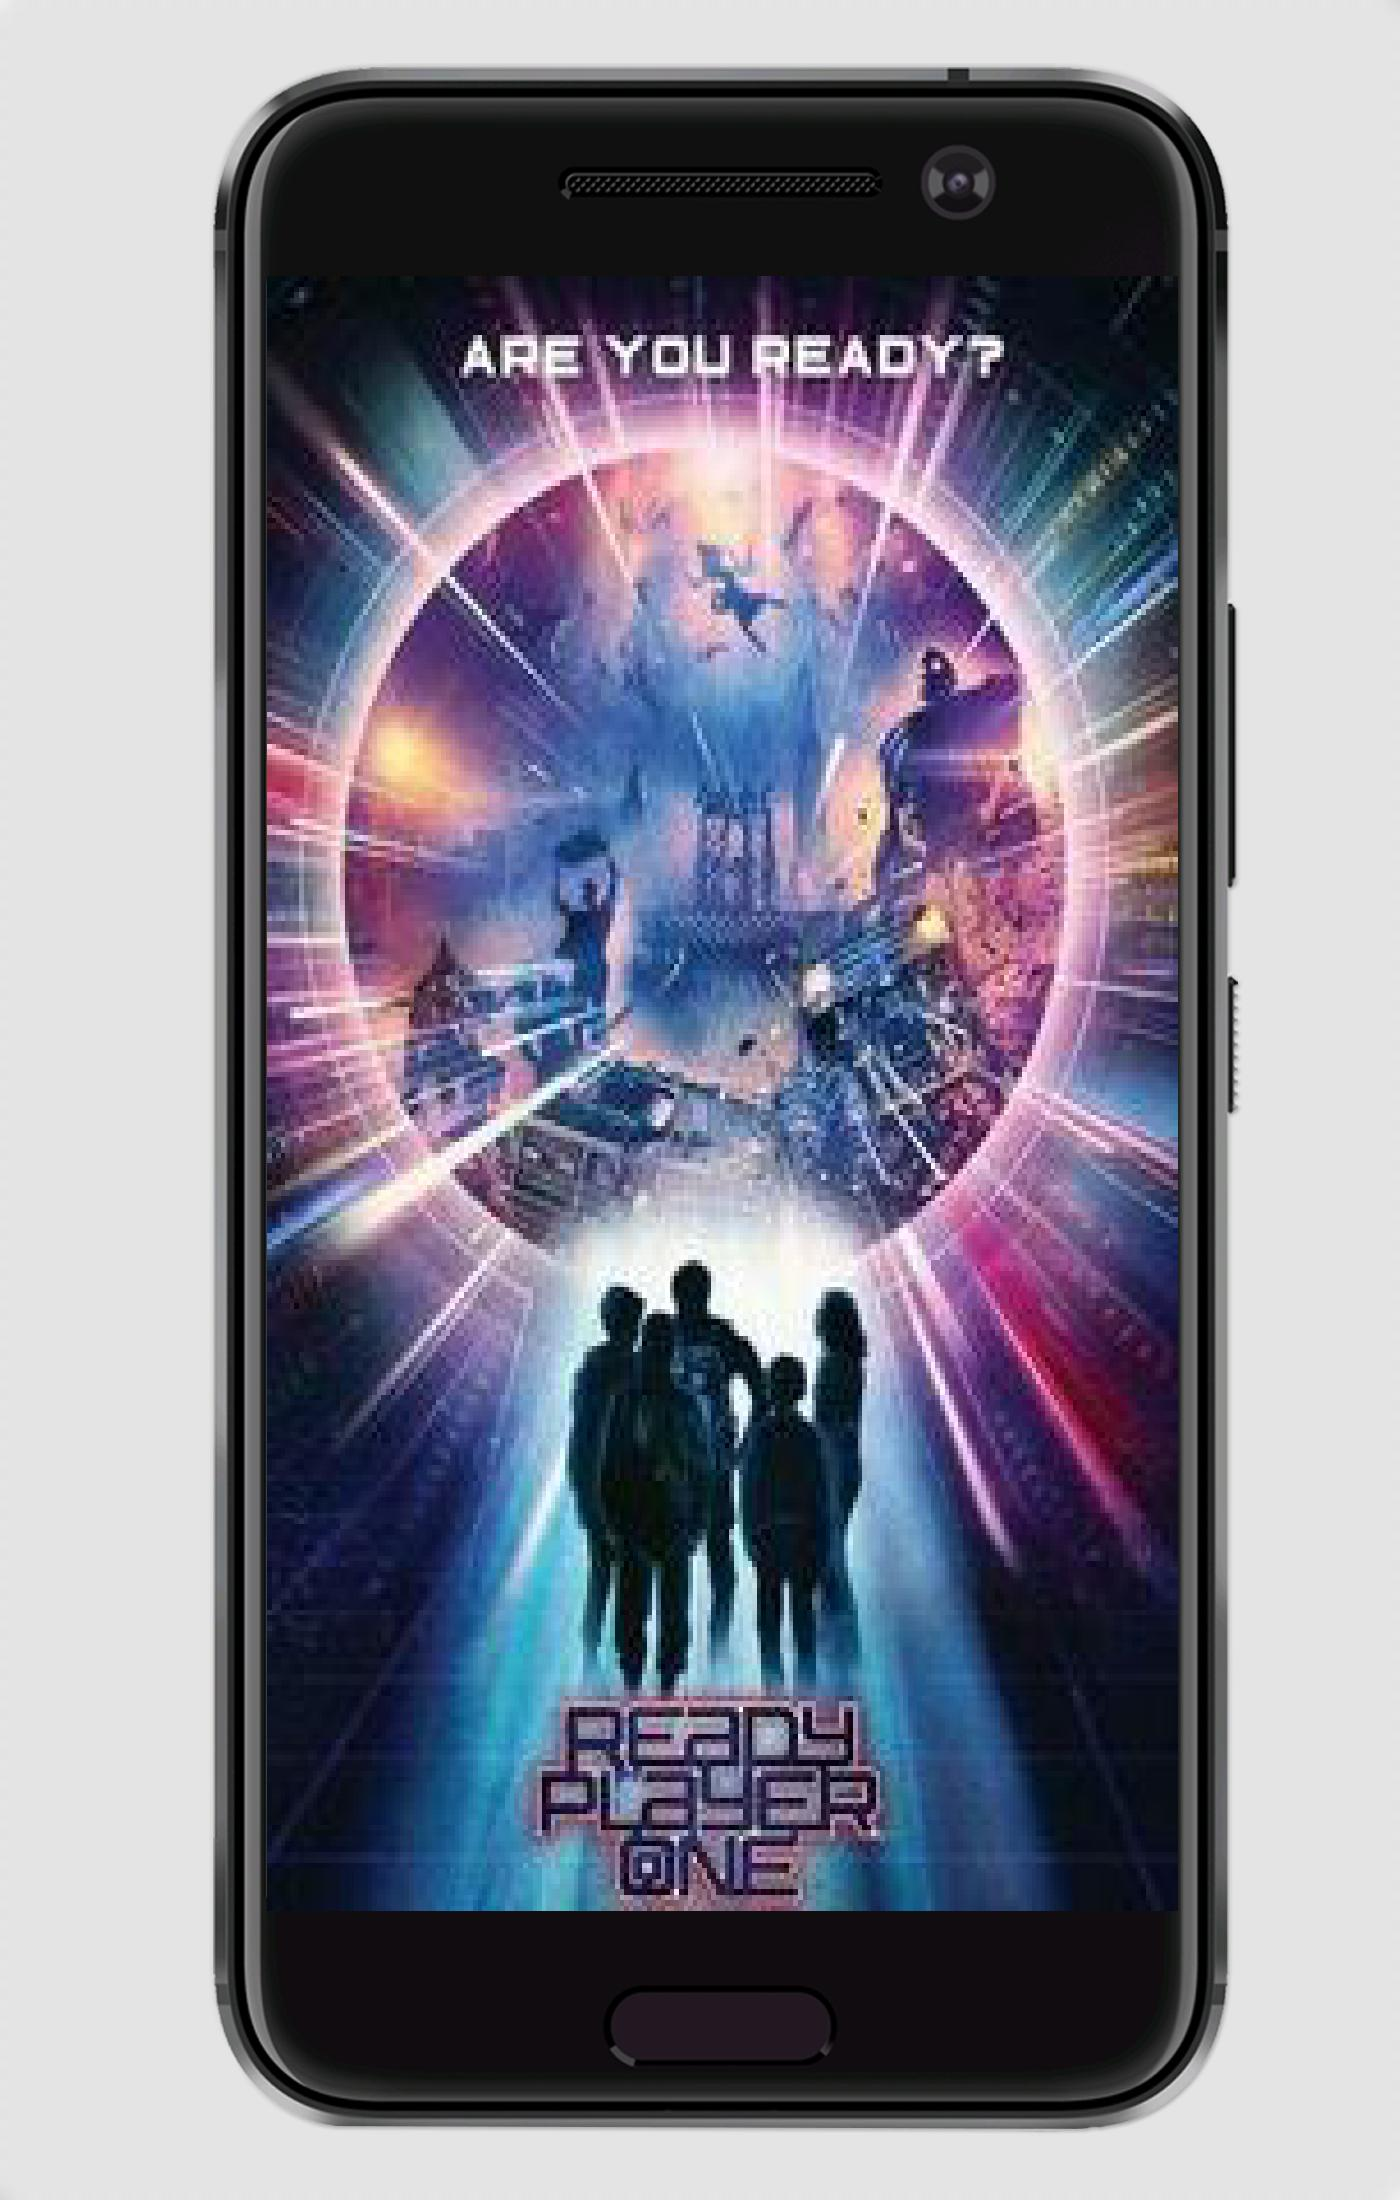 Ready Player One Wallpaper For Android Apk Download